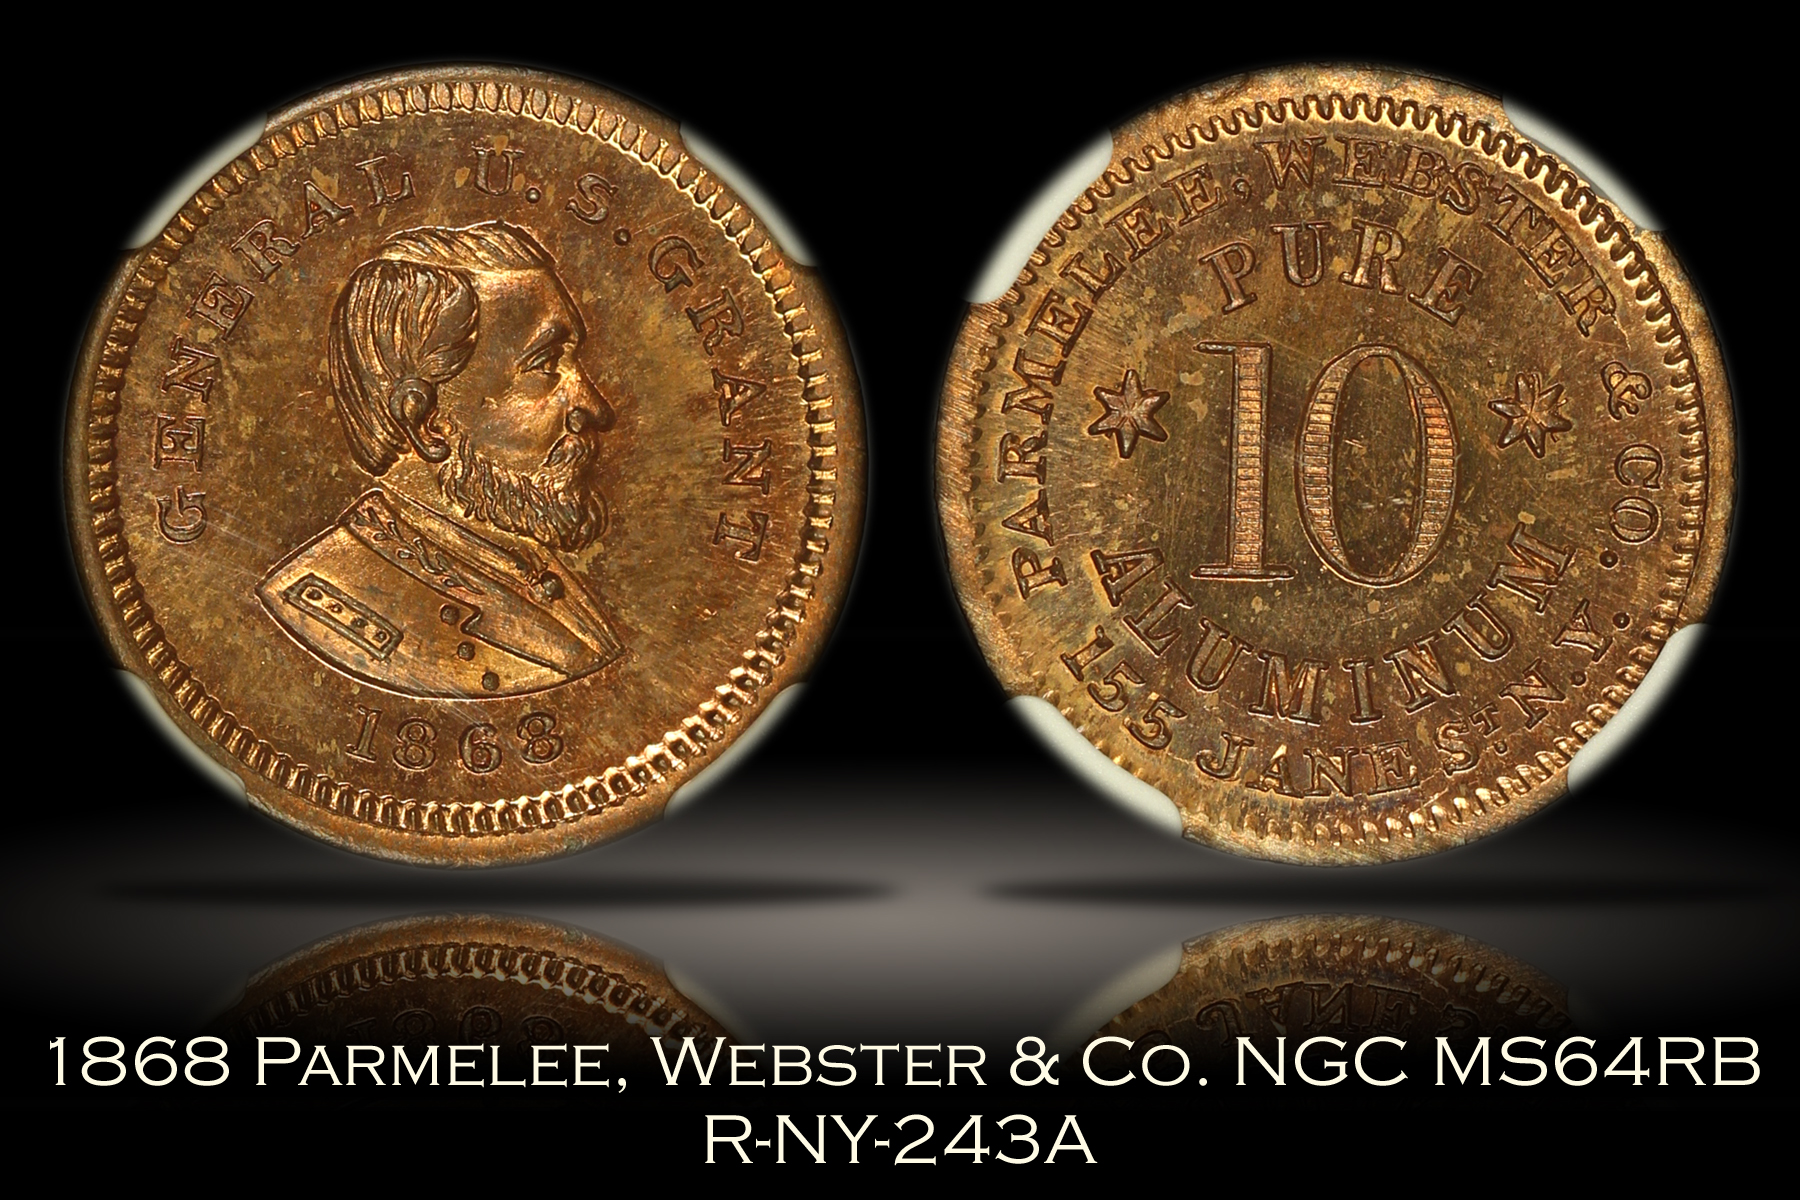 1868 Parmelee, Webster & Co. Grant R-NY-243A NGC MS64RB